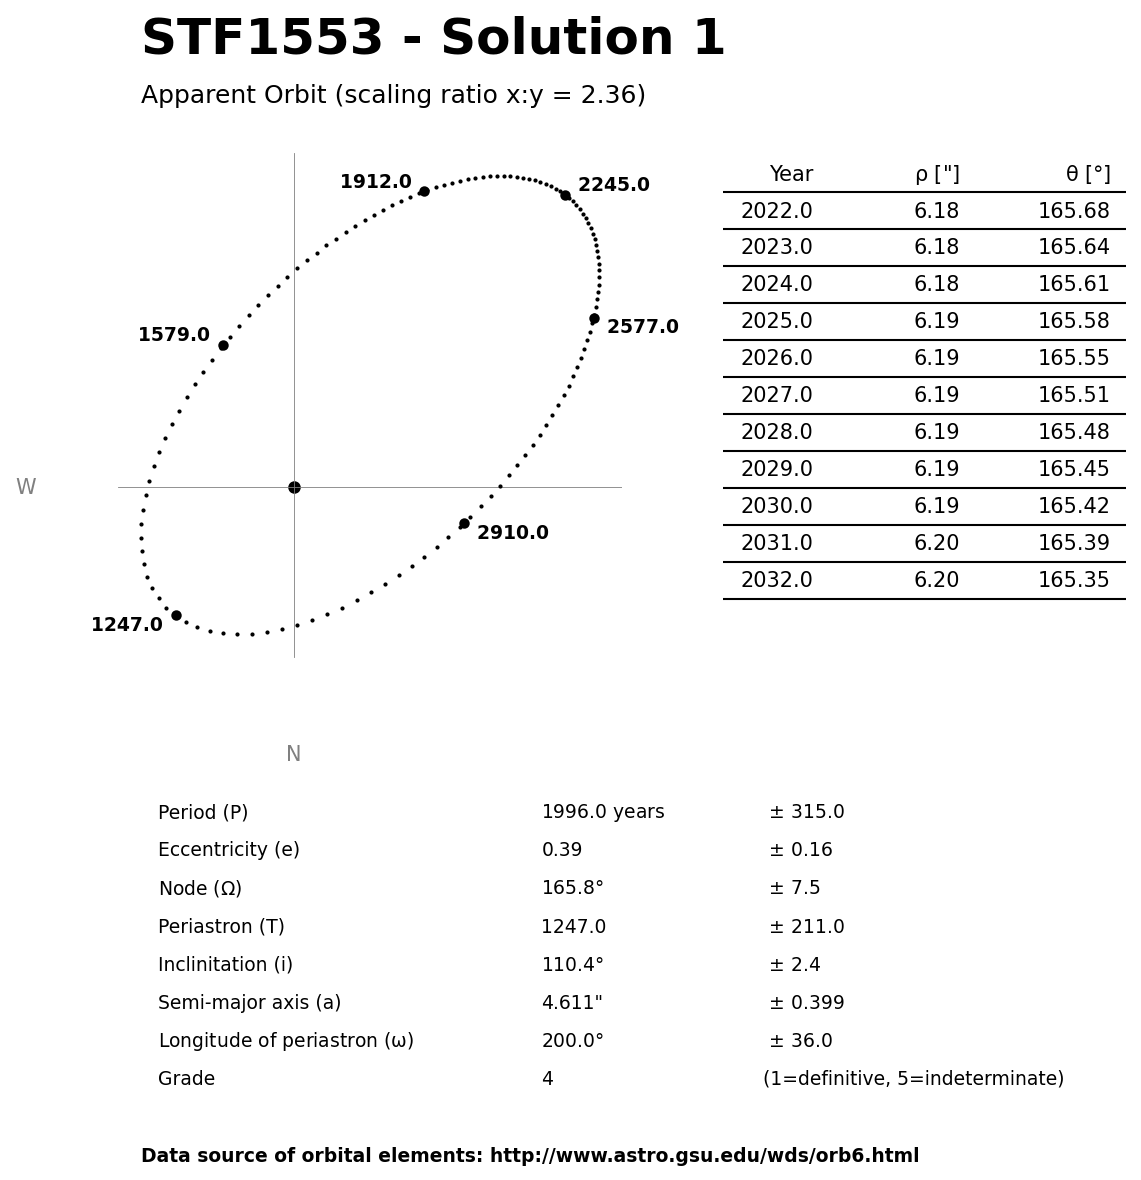 ../images/binary-star-orbits/STF1553-orbit-solution-1.jpg